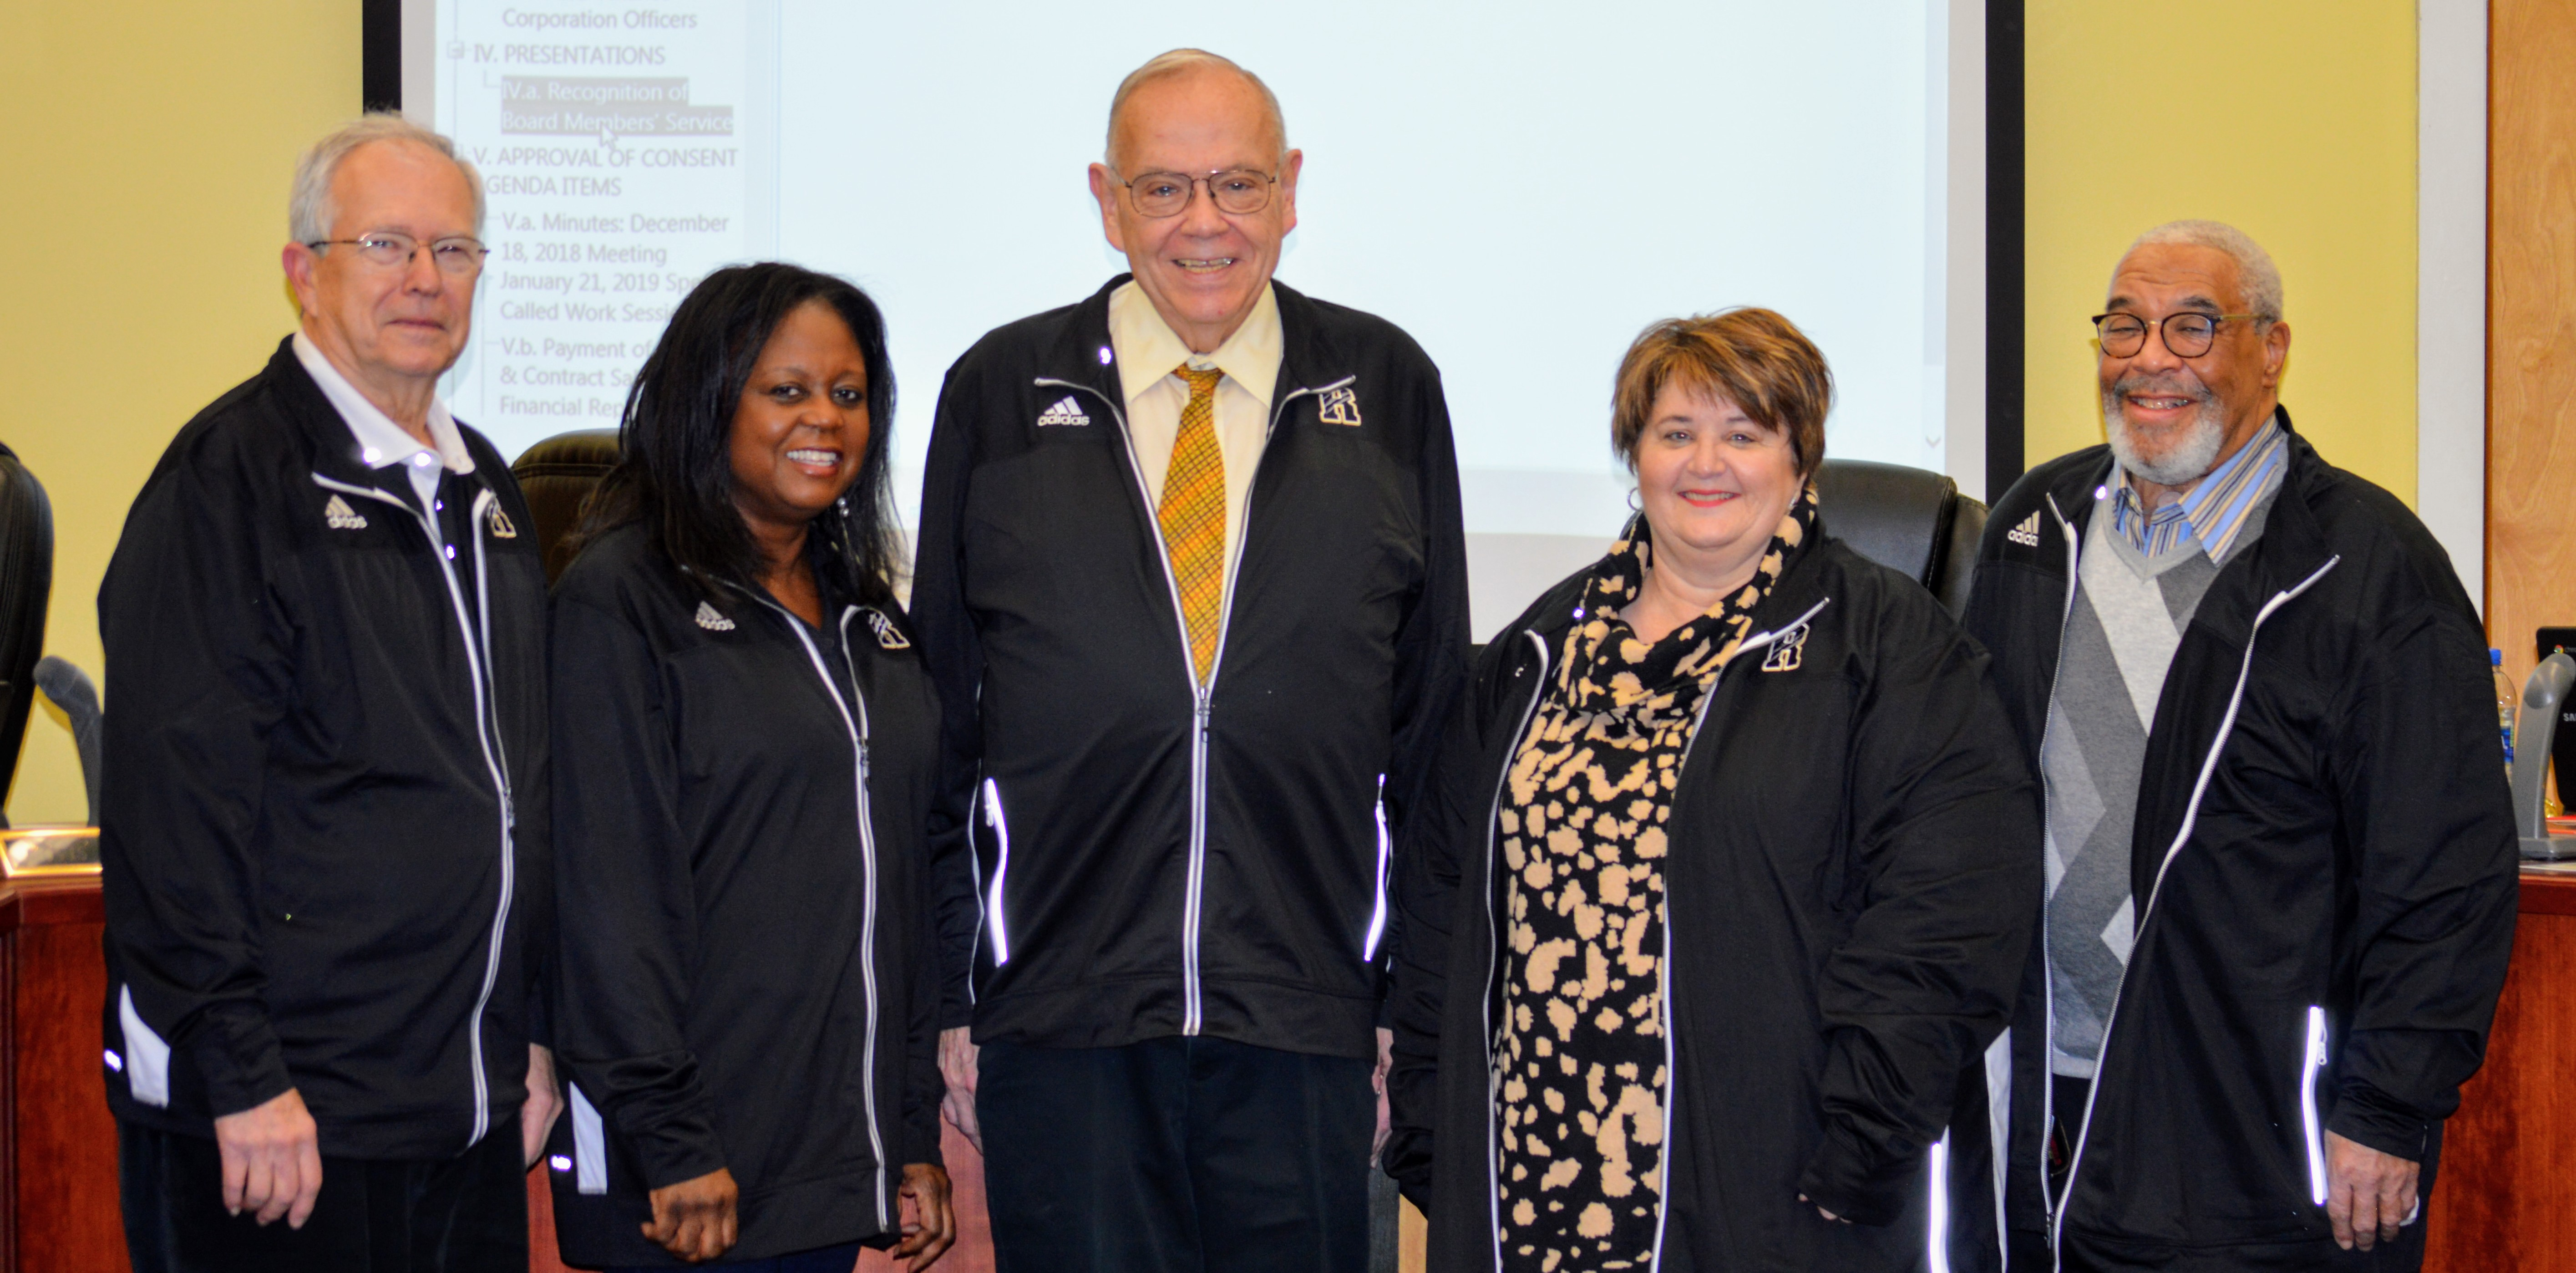 Russellville Board of Education members Joe Sparks, Lovis Patterson, James Milam, Davonna Page, and Phillip West